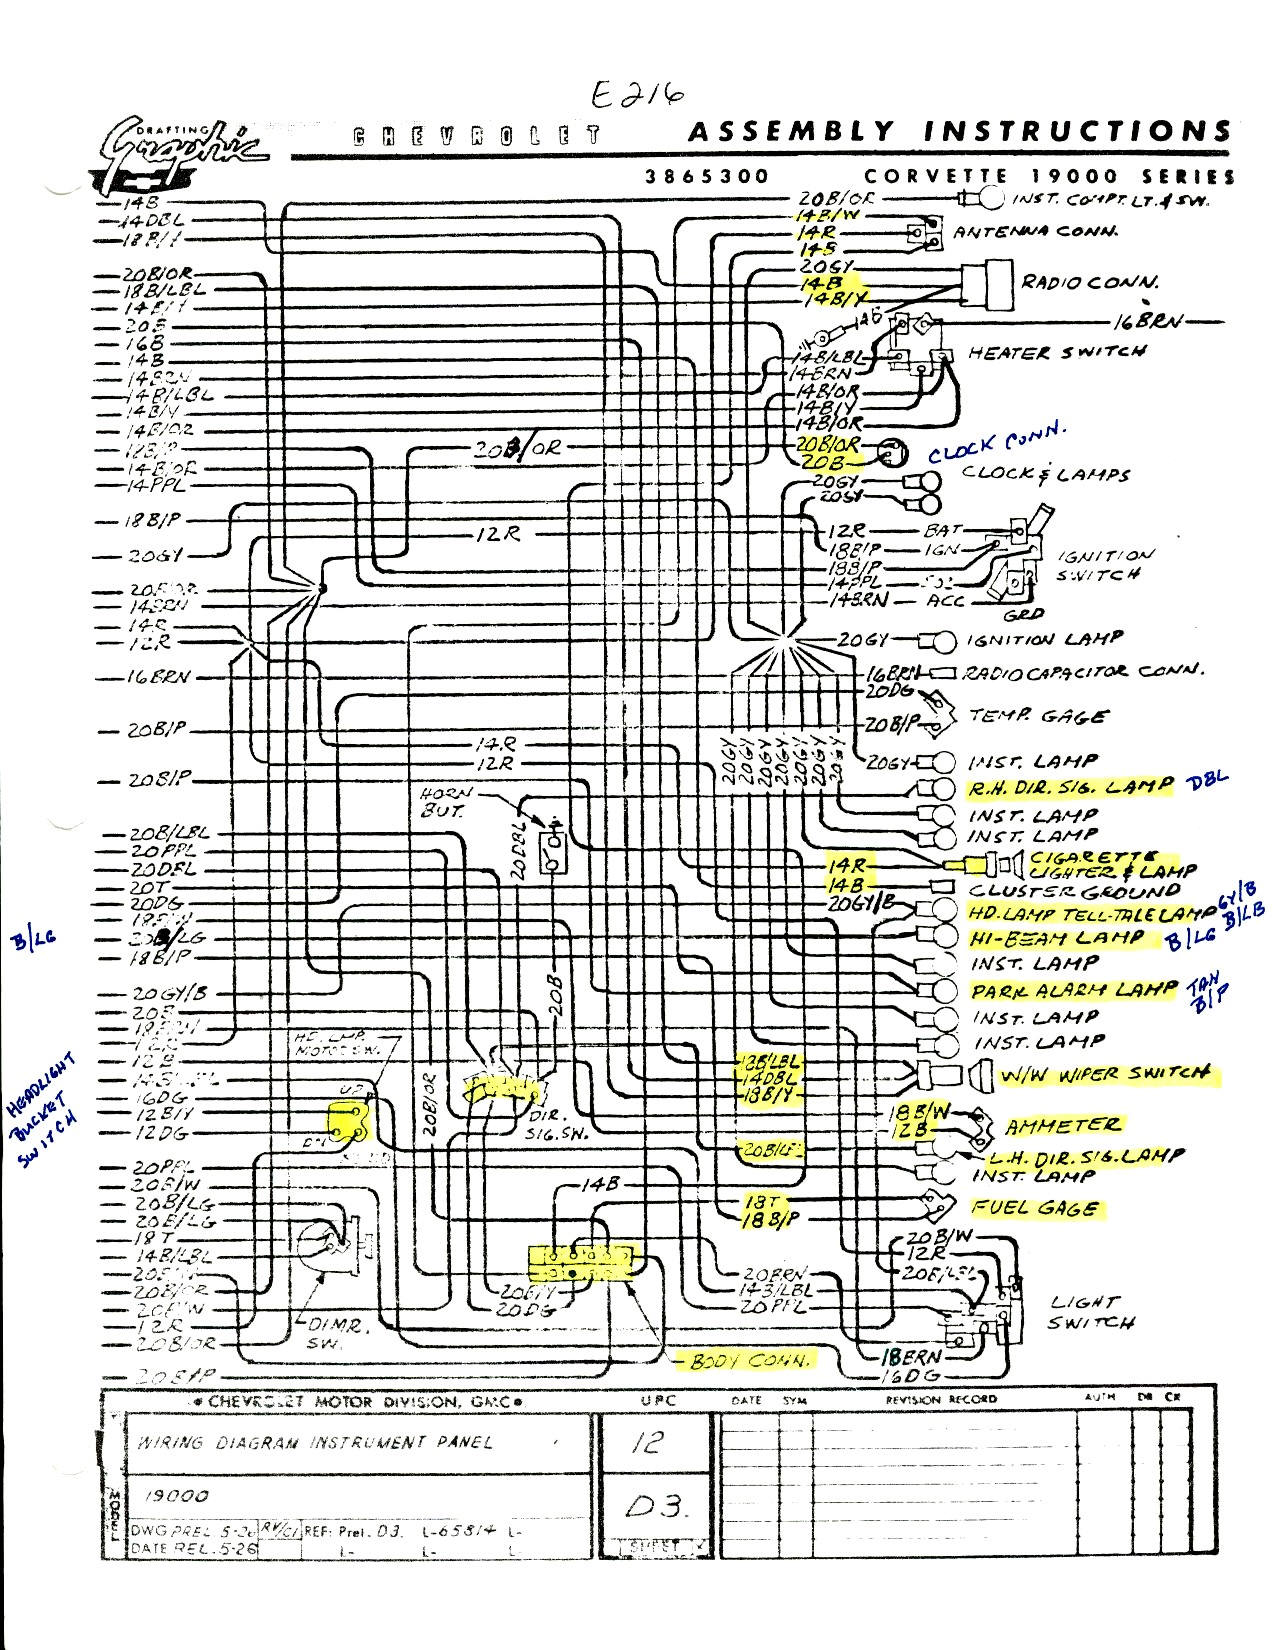 Yamaha 135lc Wiring Diagram On Images Free Download Wirning Diagrams